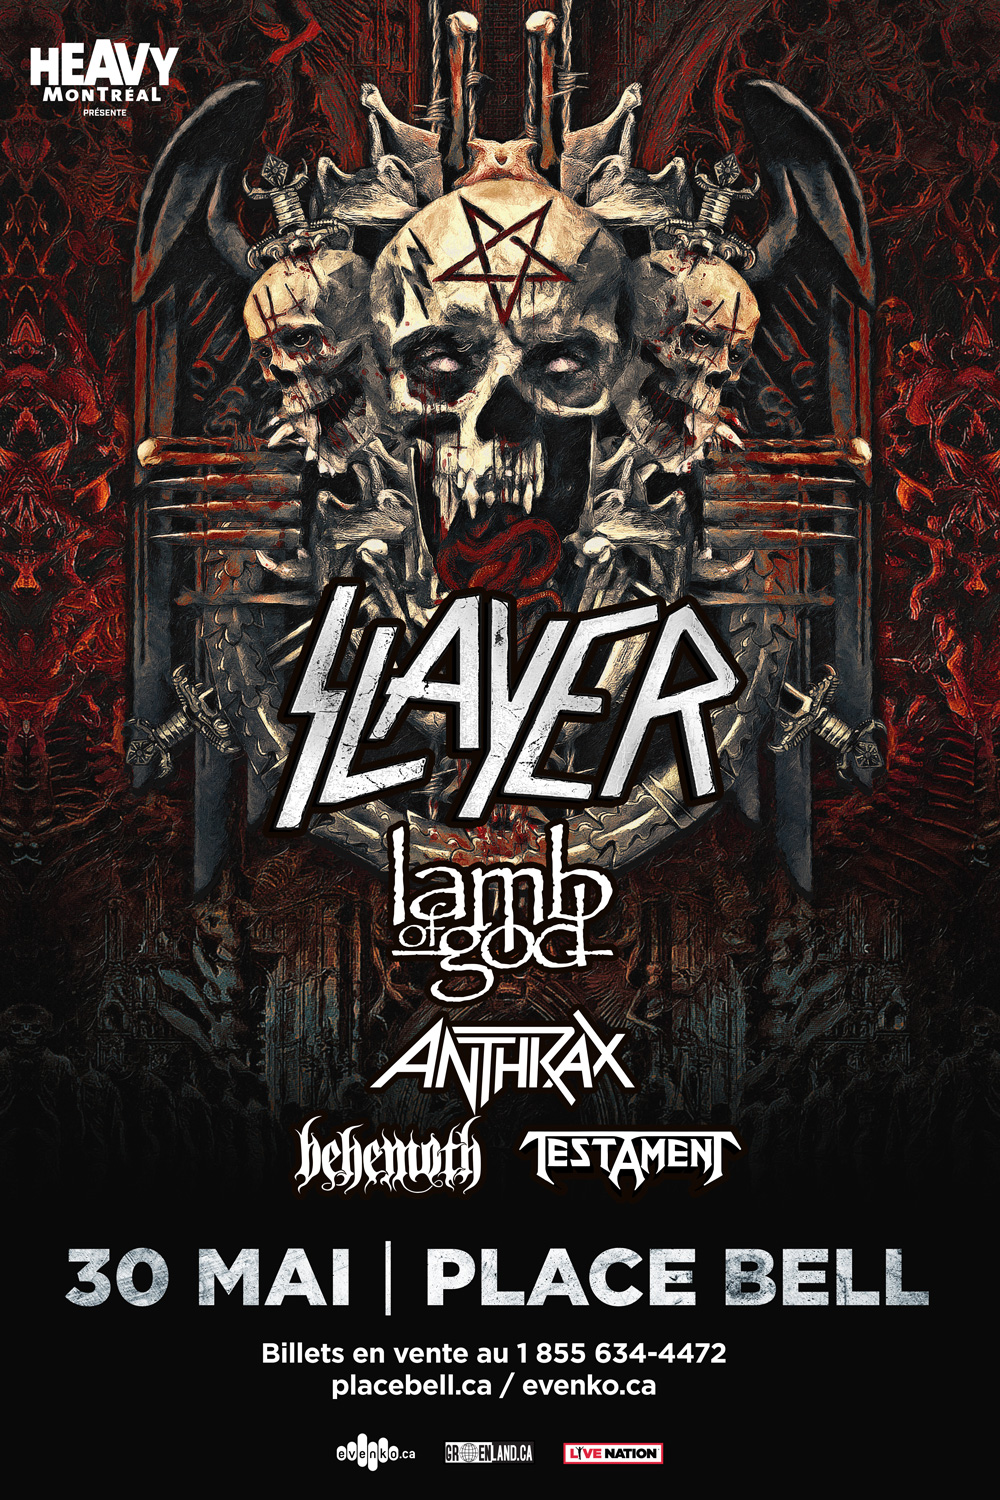 Win a pair of tickets to see Slayer with Lamb of God, Behemoth, Anthrax and Testament in Laval May 30